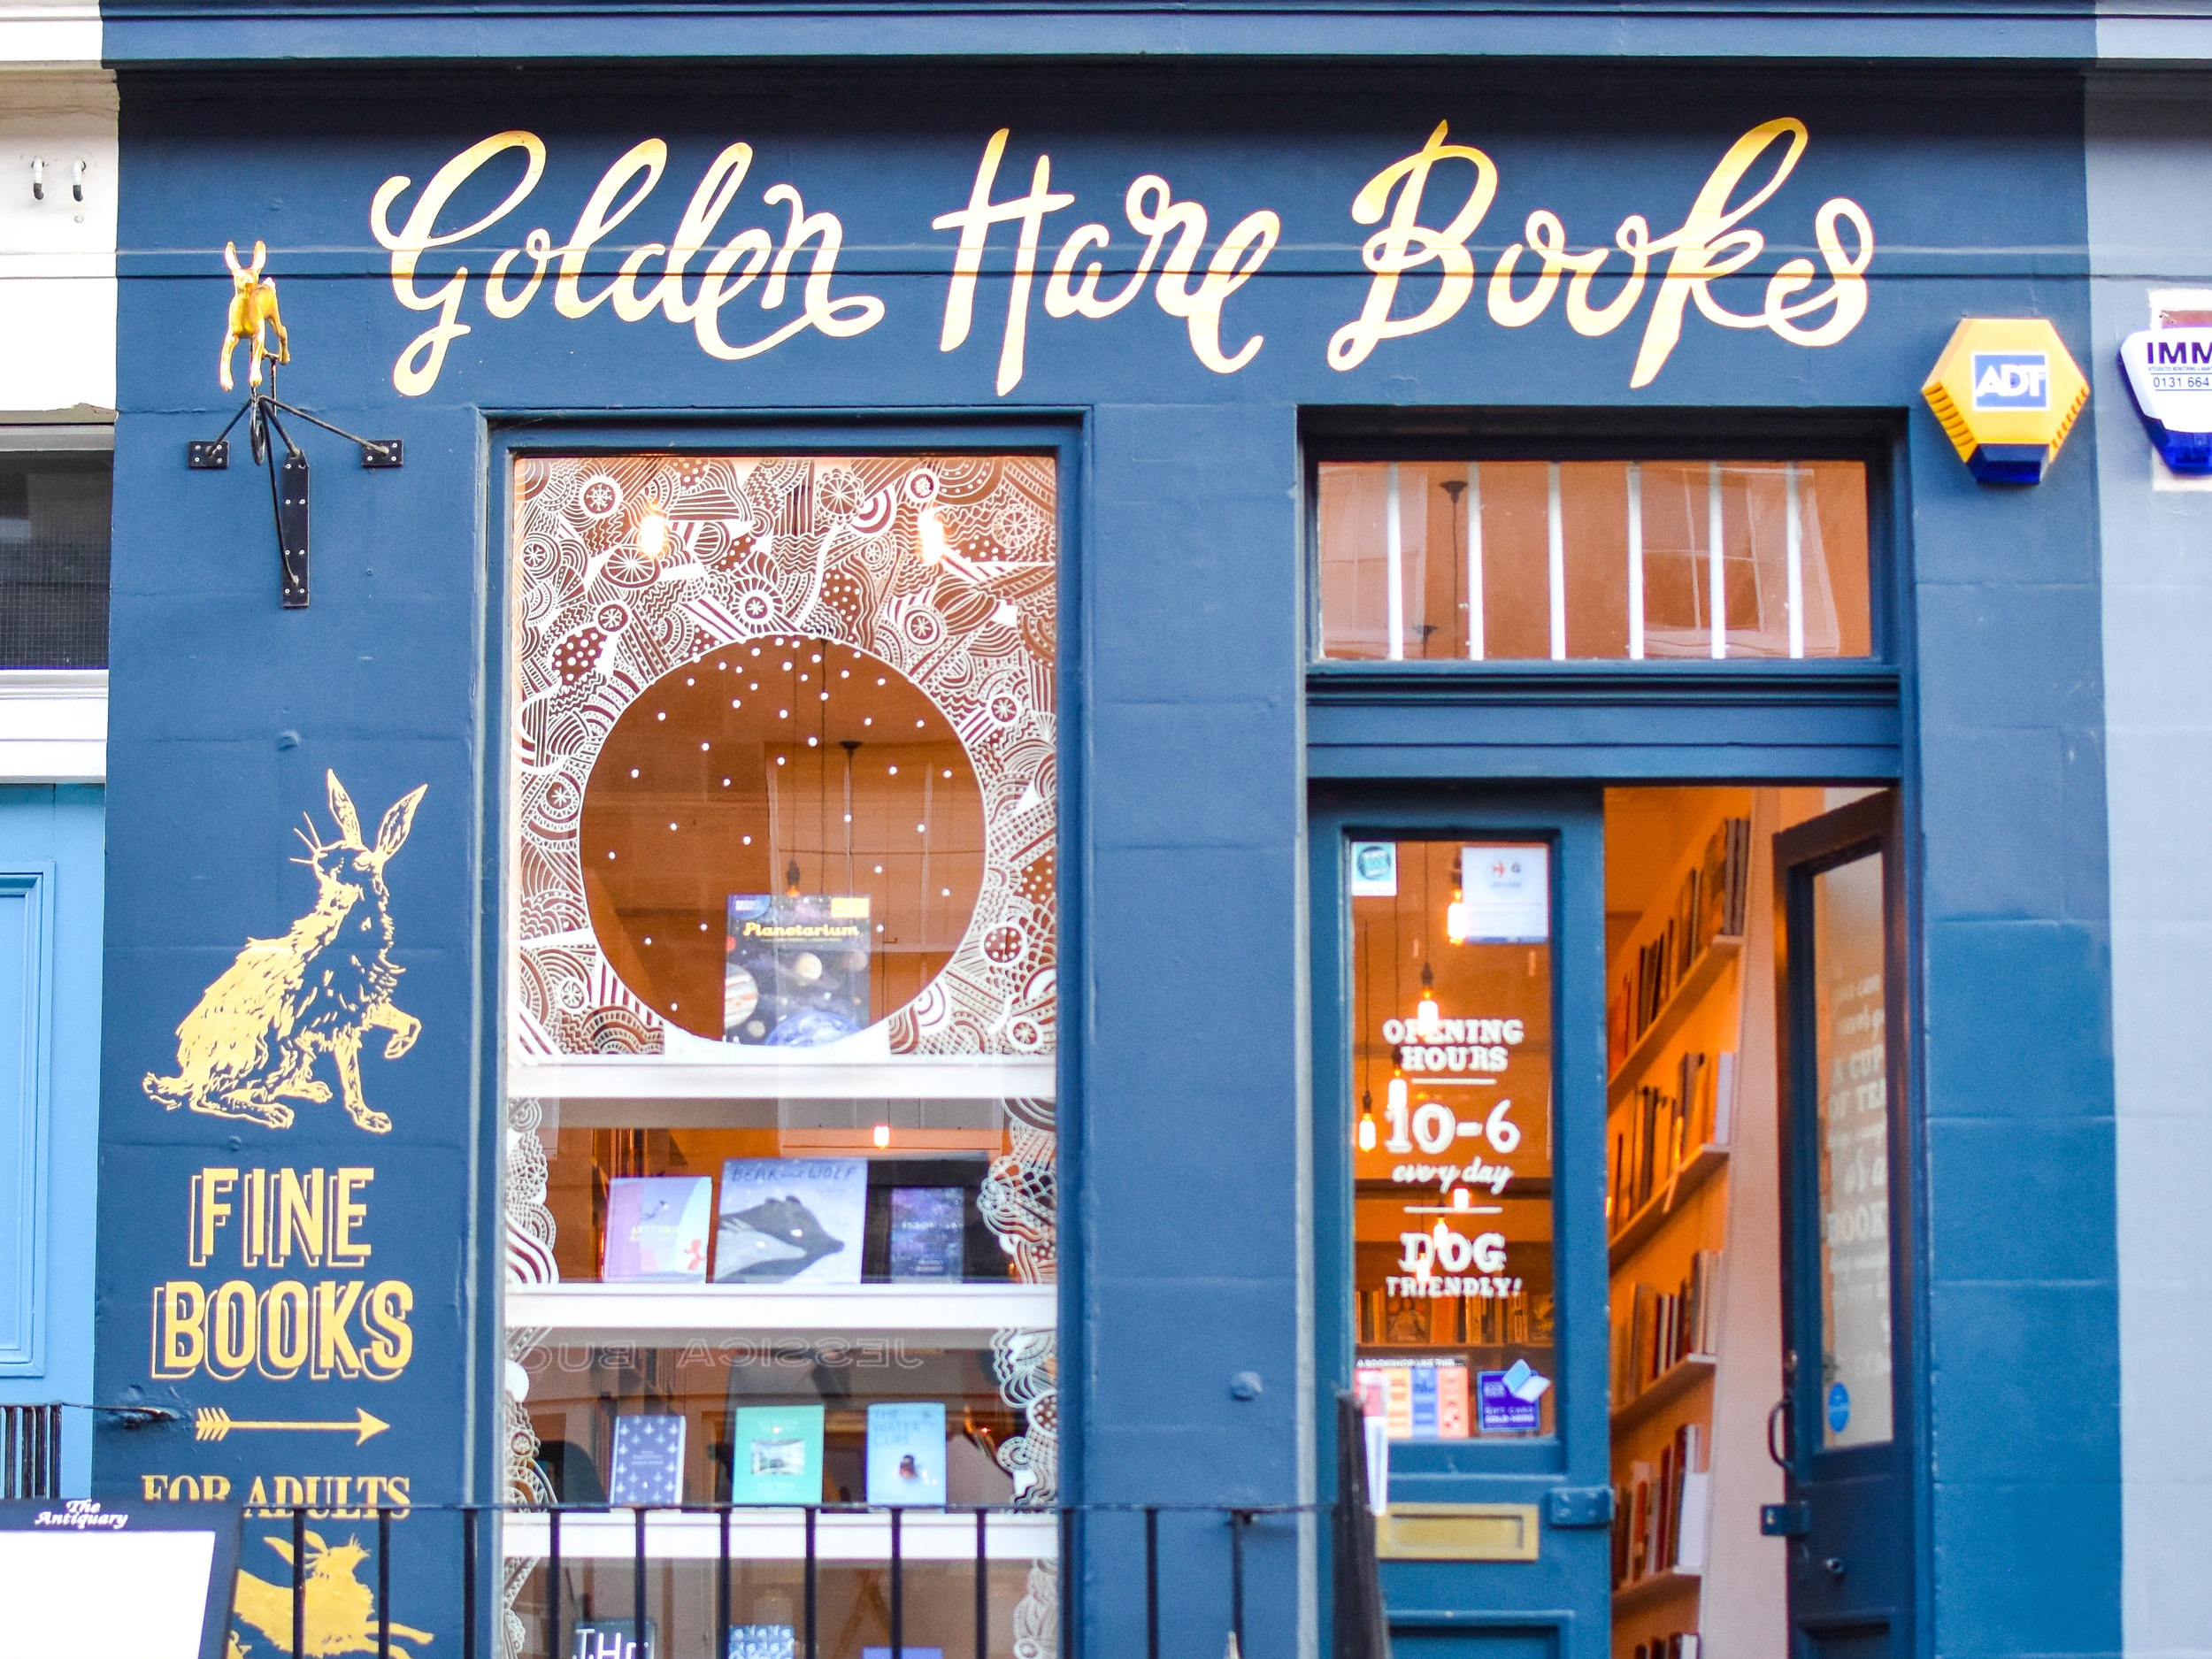 Golden Hare Books - Golden Hare Books is winner of the 2019 Independent Bookshop of the Year Award. Based in the leafy but vibrant area of Stockbridge, Golden Hare is known for its friendly and knowledgeable booksellers, busy events programme and thoughtful curation. Their inaugural Golden Hare Book Festival will take place 18-20th October 2019.Open 7 days10.00am-6.00pm